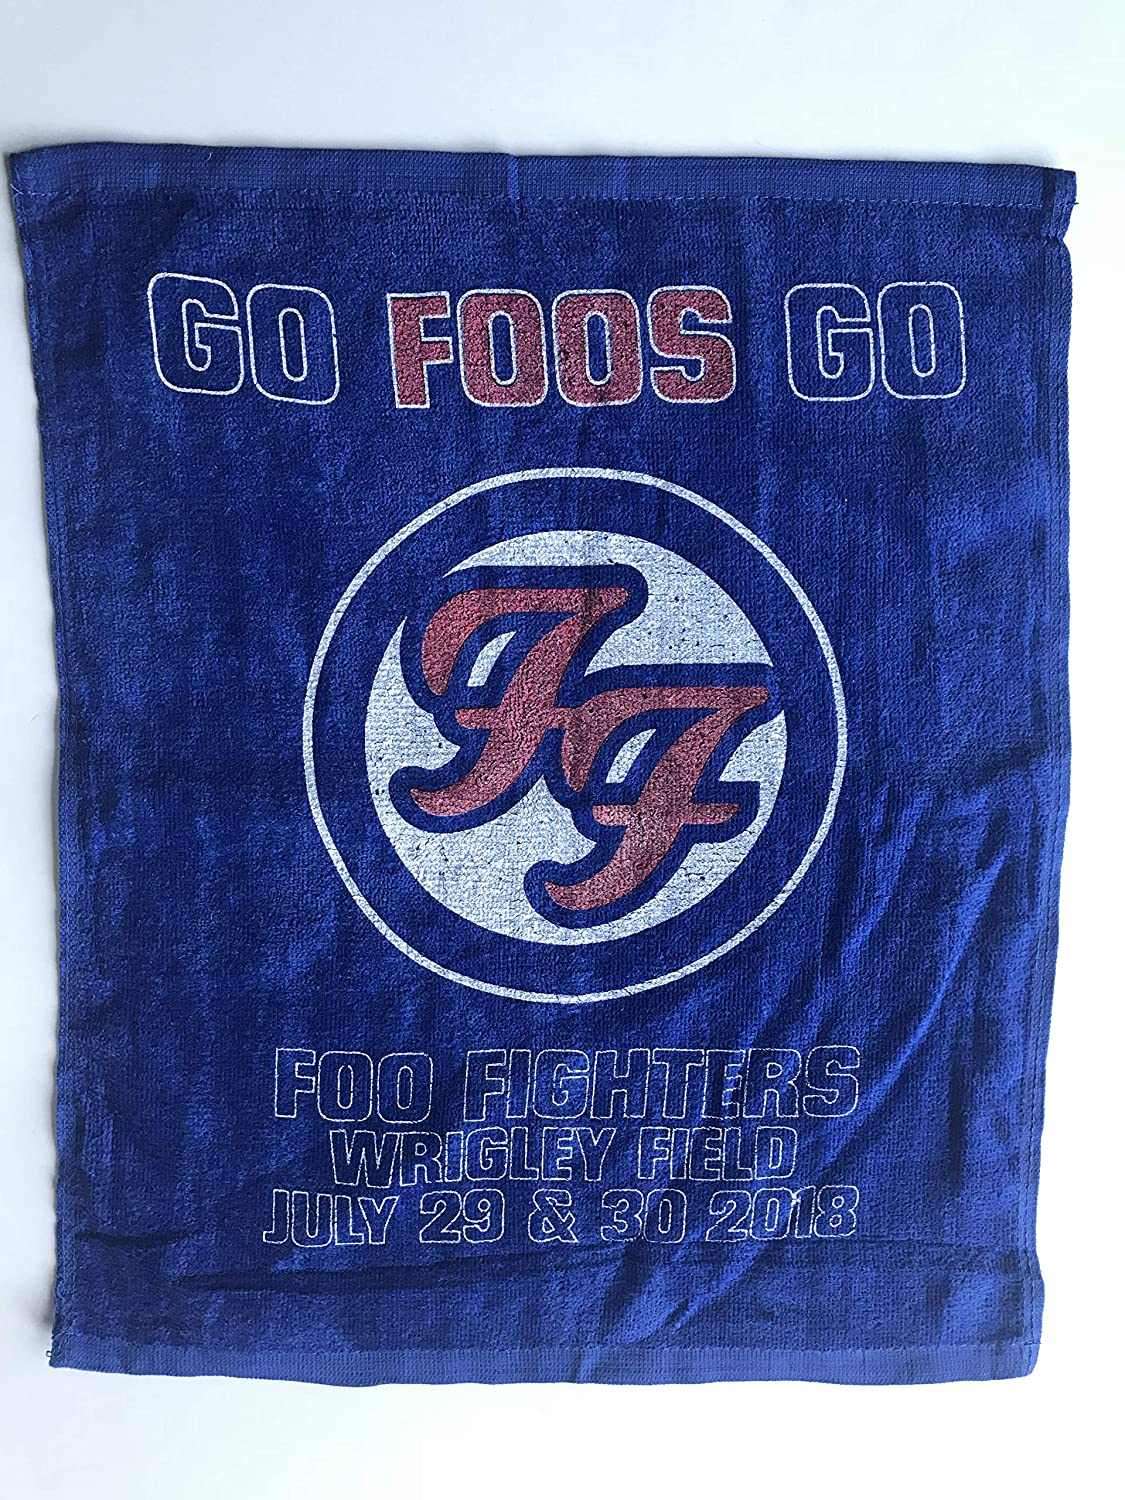 Foo Fighters rally towel chicago cubs wrigley field baseball 2018 tour new